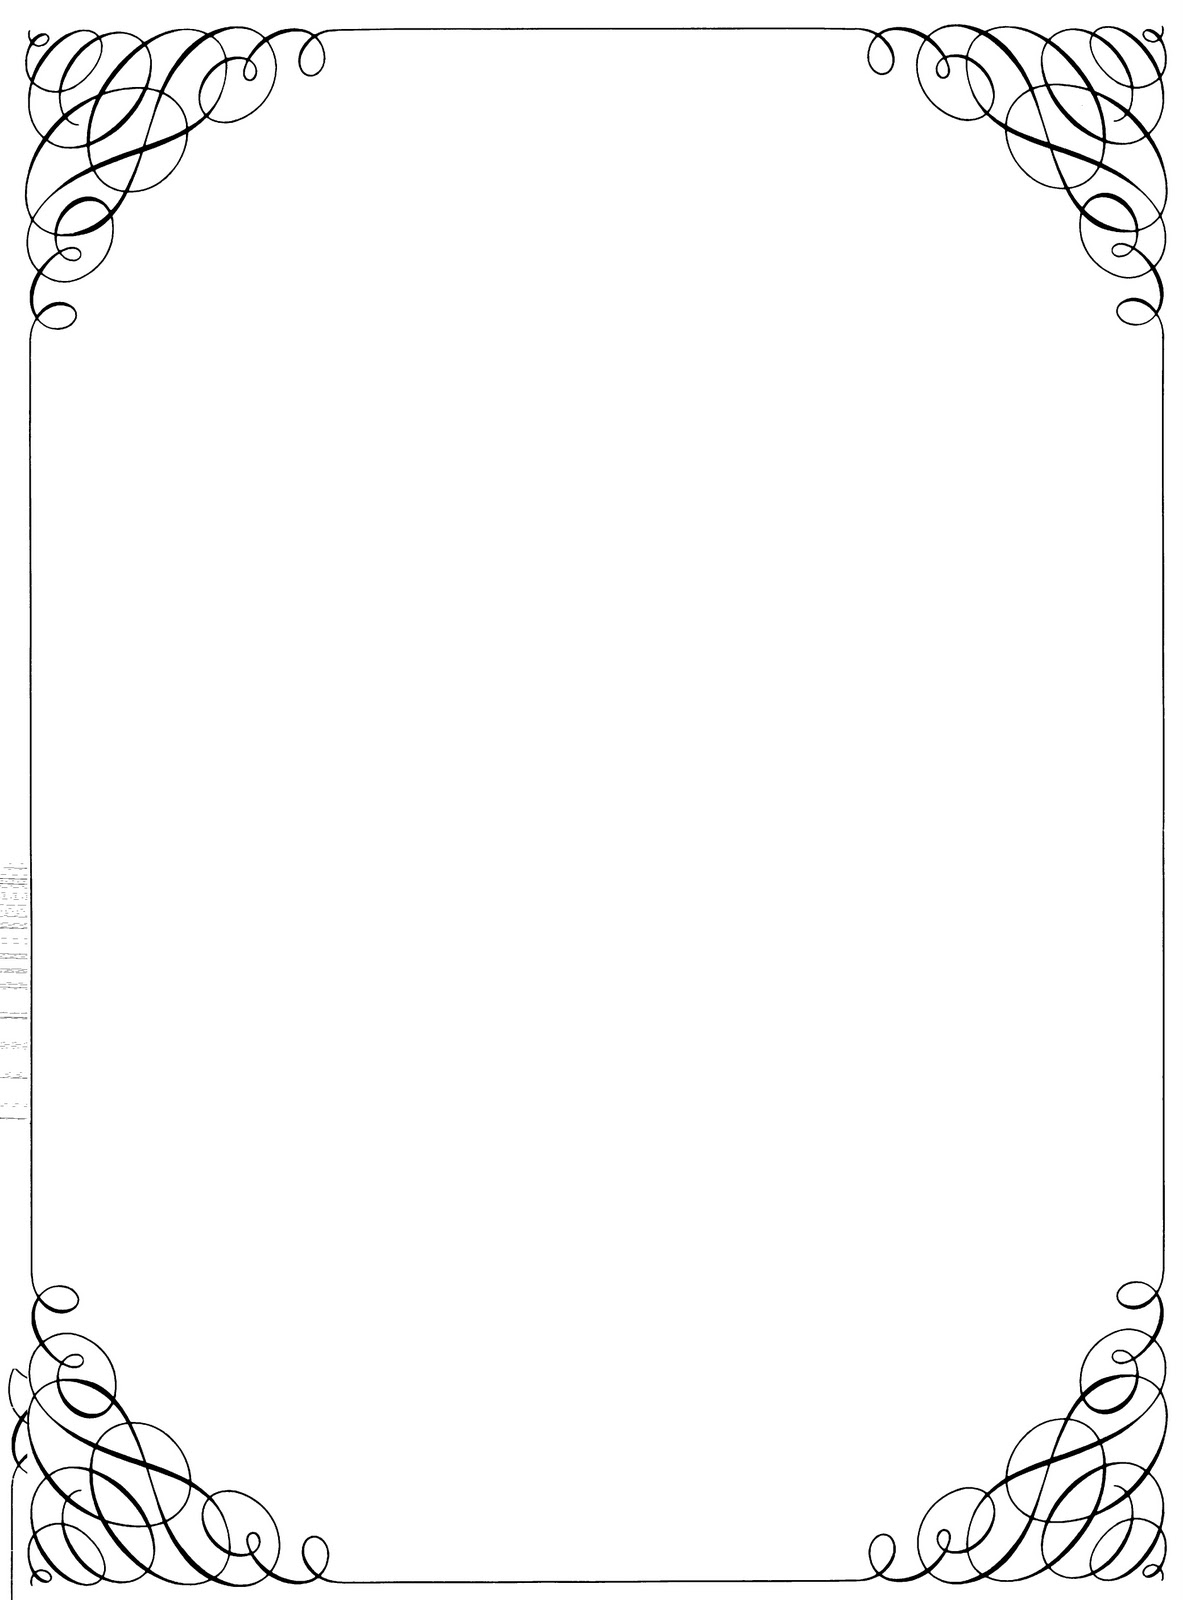 Free Border Clipart Amp Look At Clip Art Images